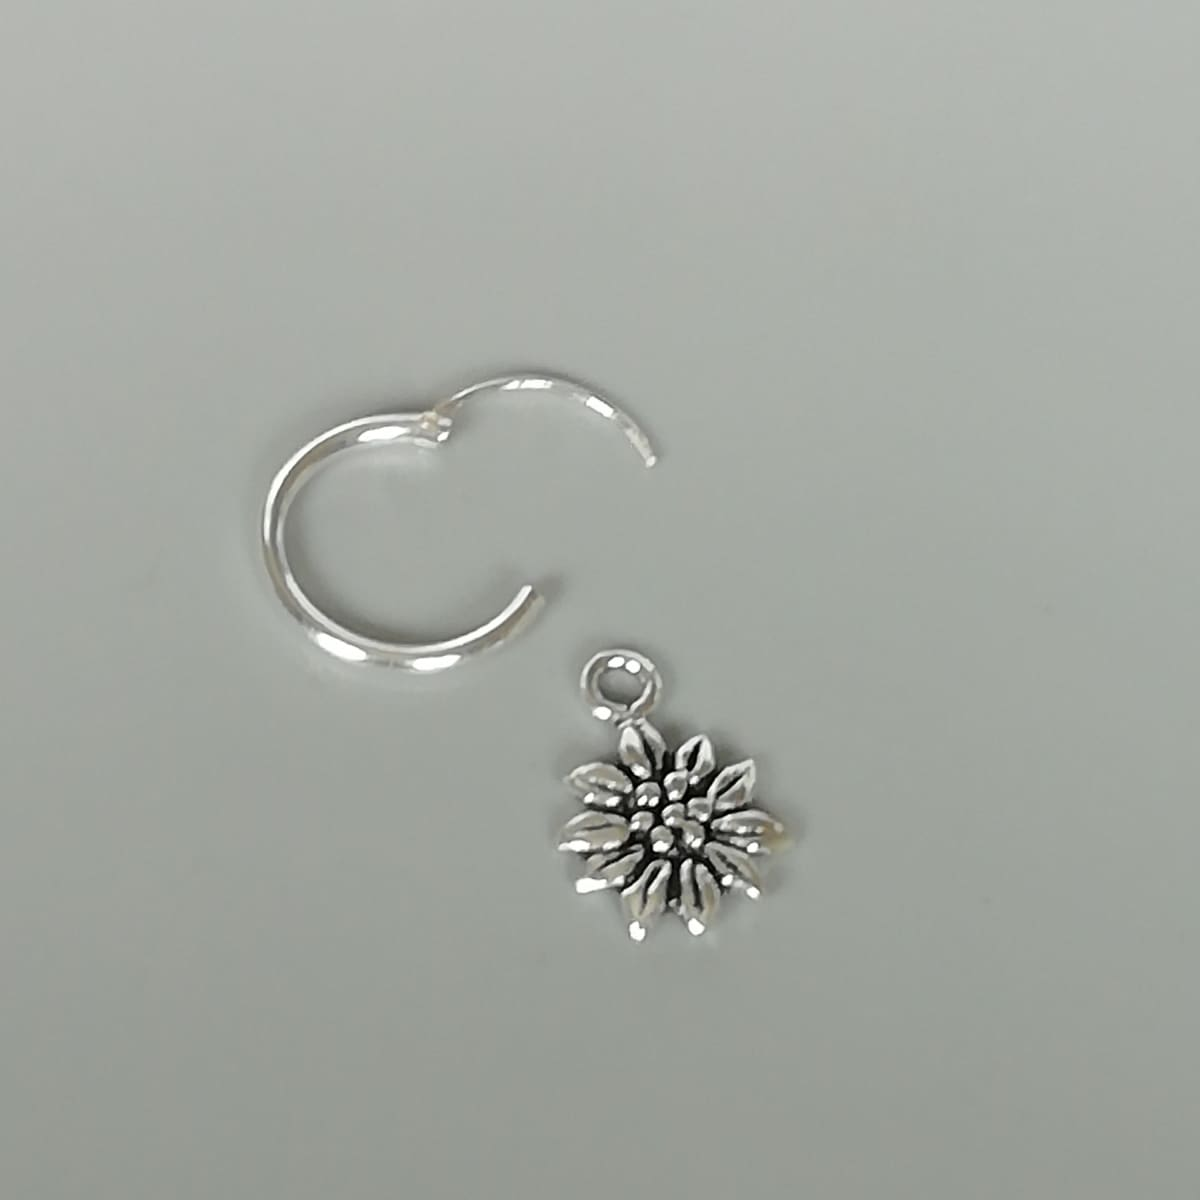 Earrings Silver sunflower charm hoop | Sterling silver ear hoops | Flower | 12 mm earrings | Bohemian jewelry | Gift for her | E393 - by